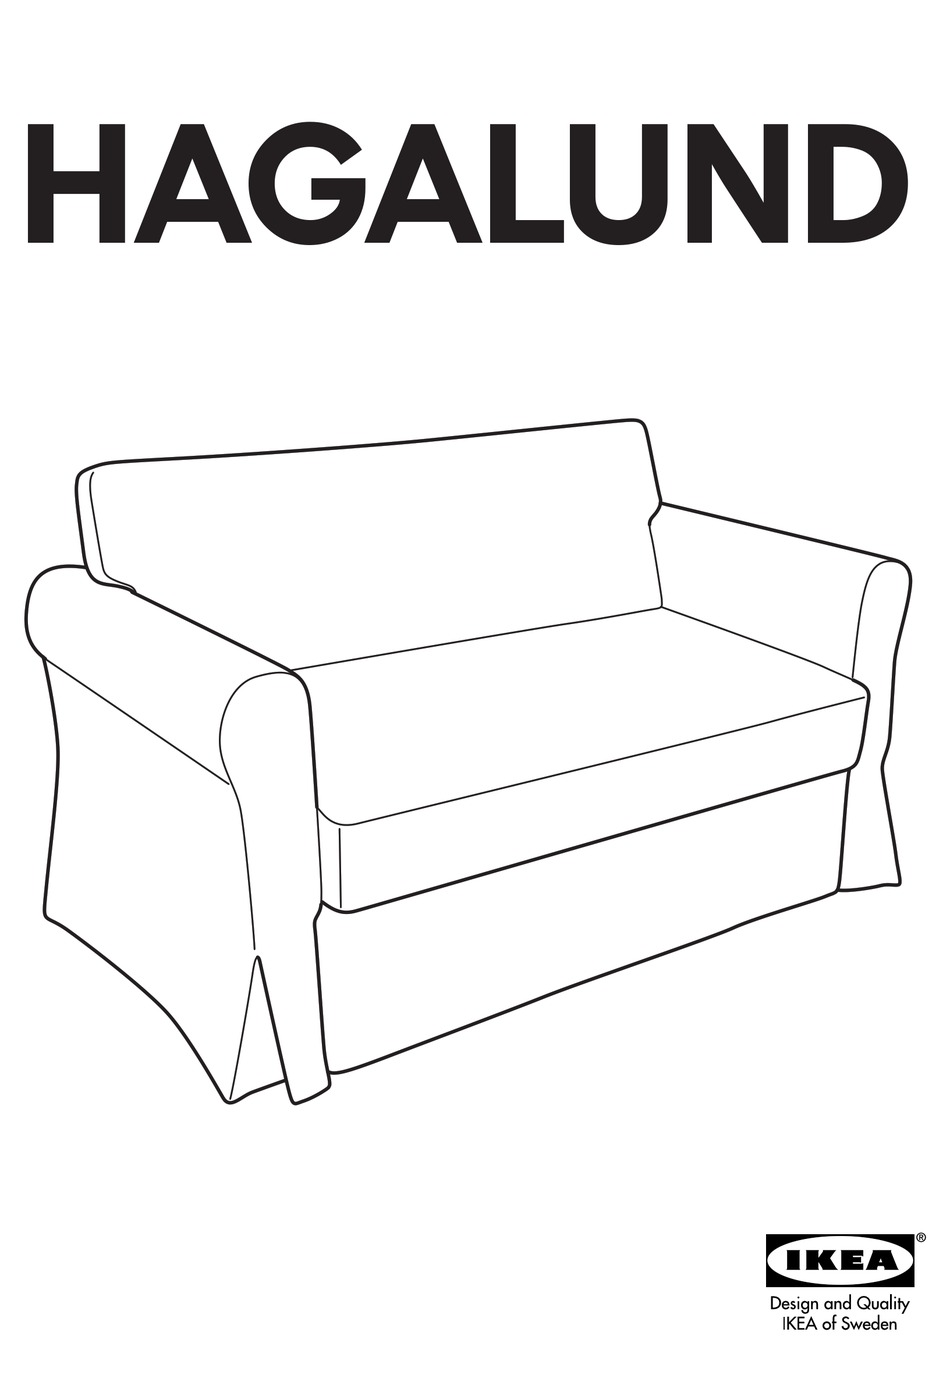 Ikea Hagalund Sofa Bed Frame Instructions Manual Pdf Download Manualslib